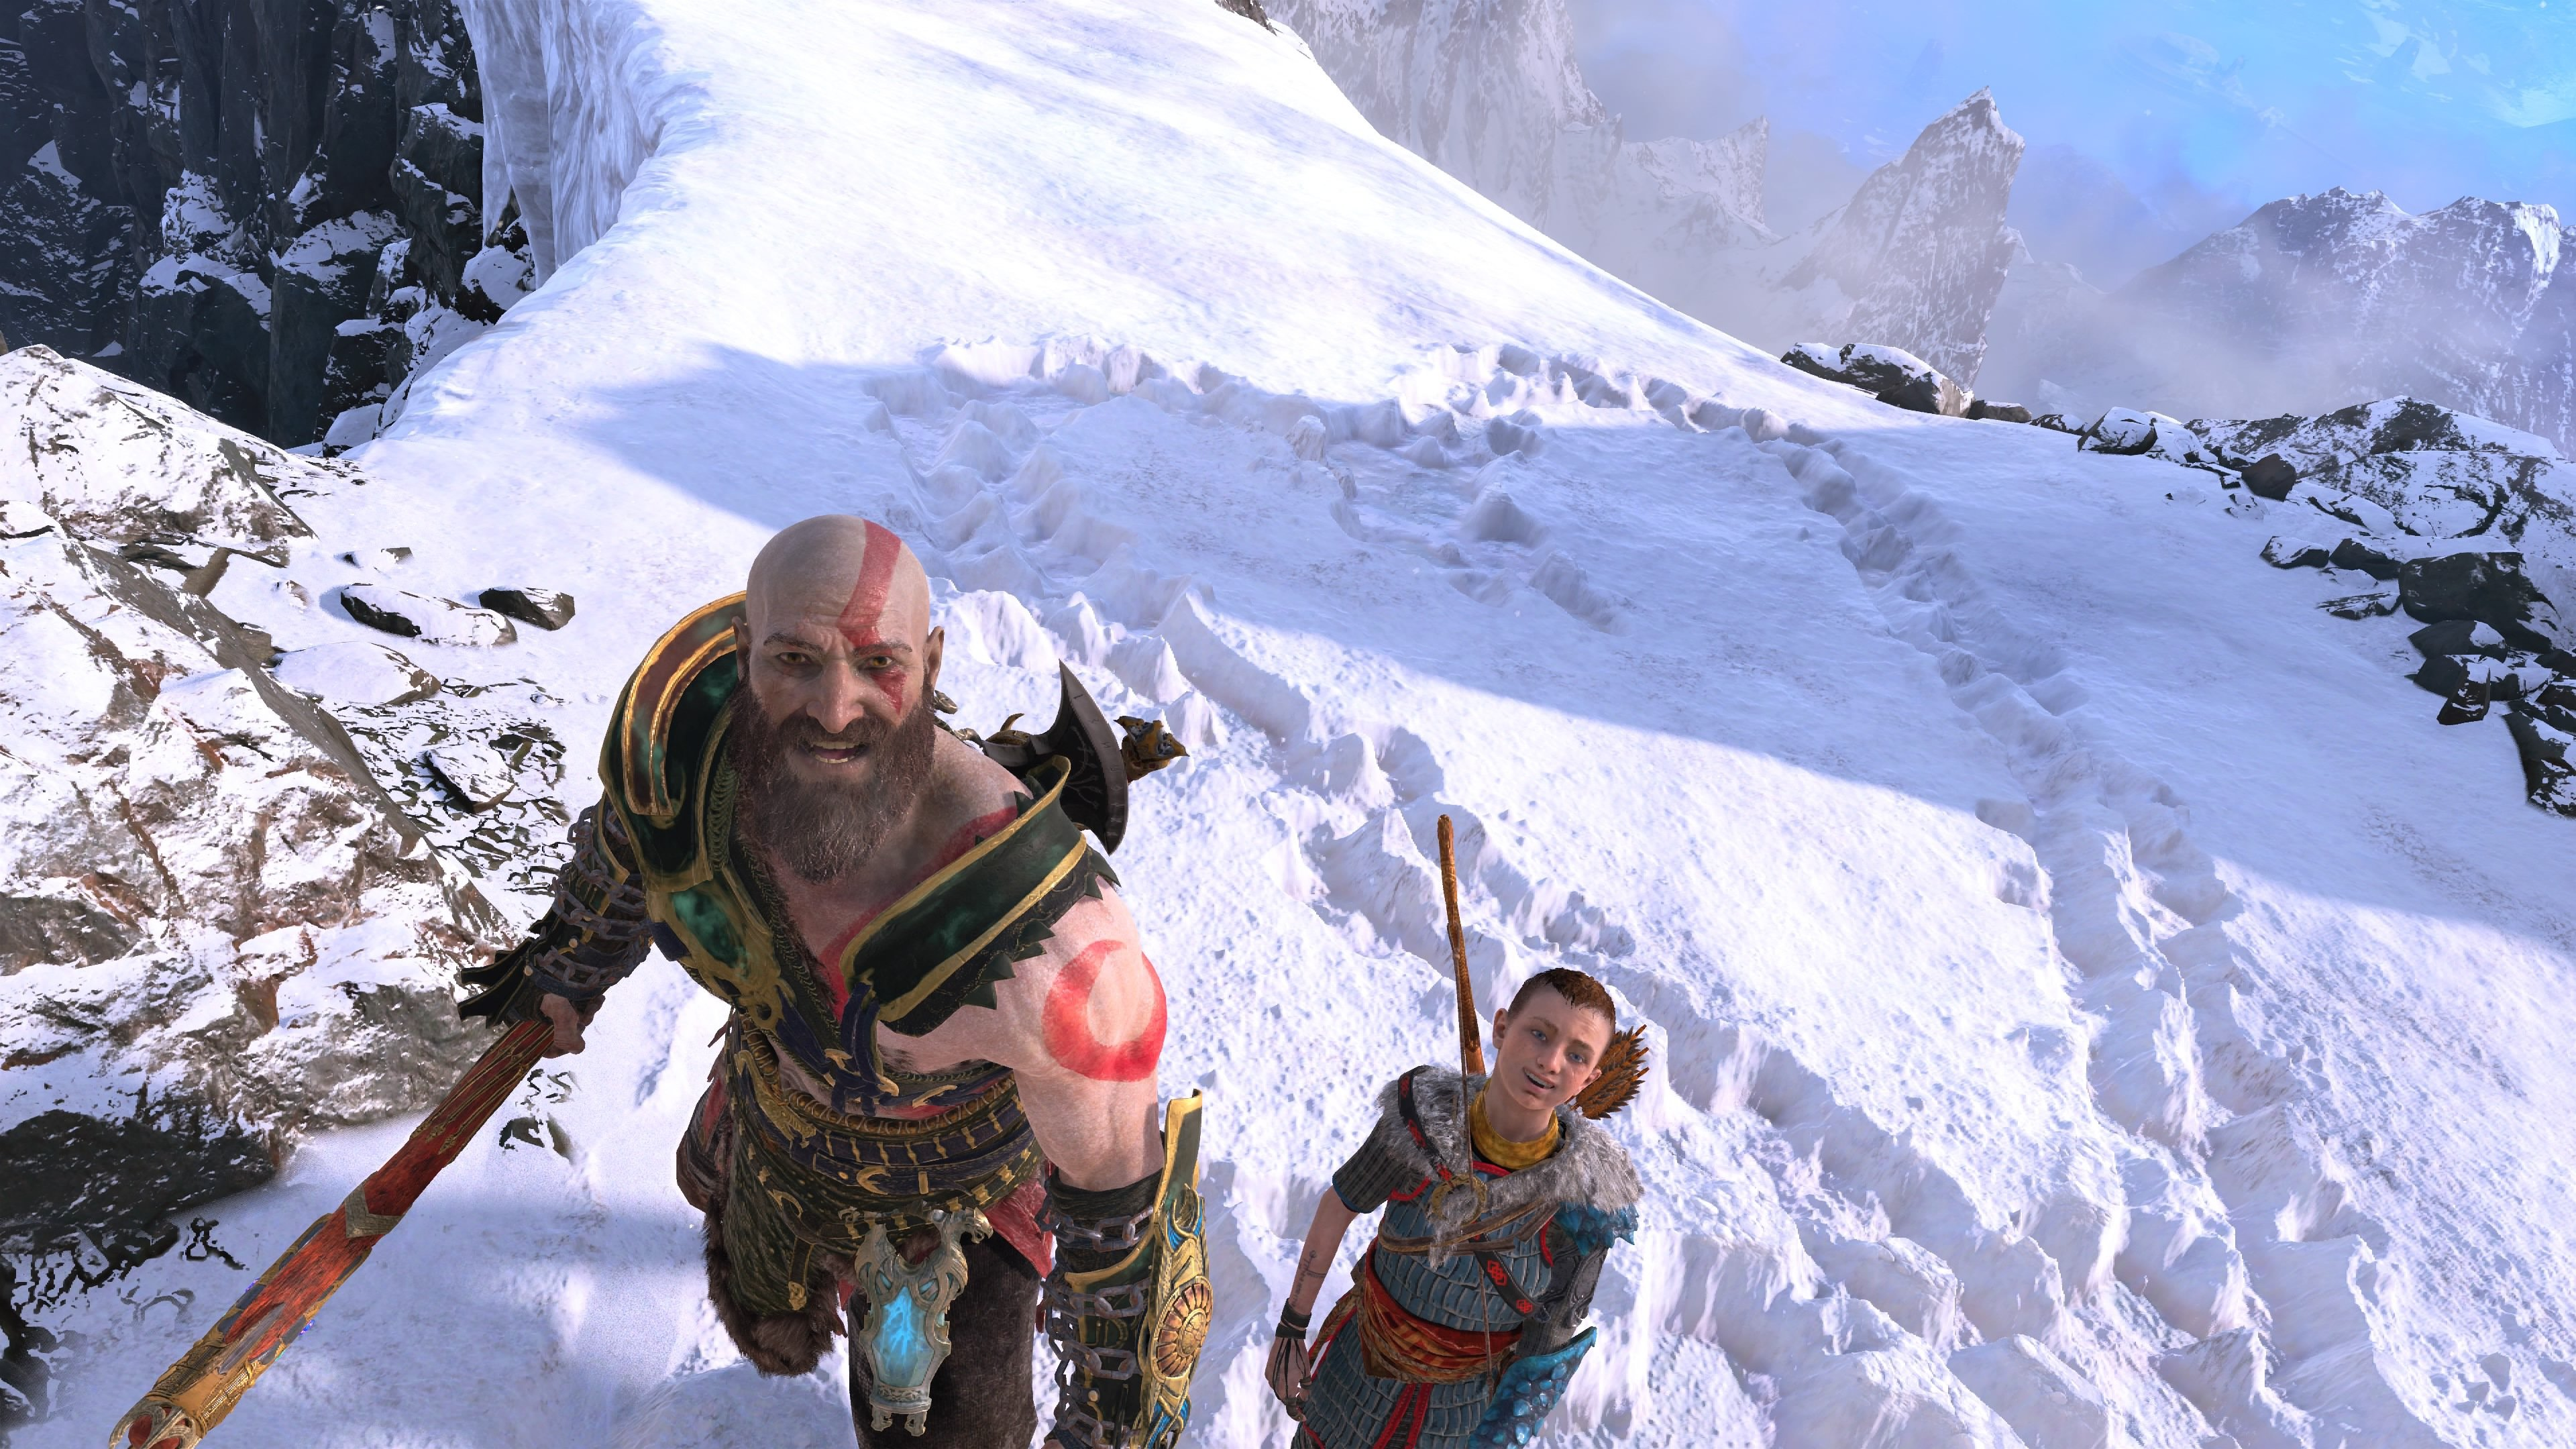 god of war how to use phot mode